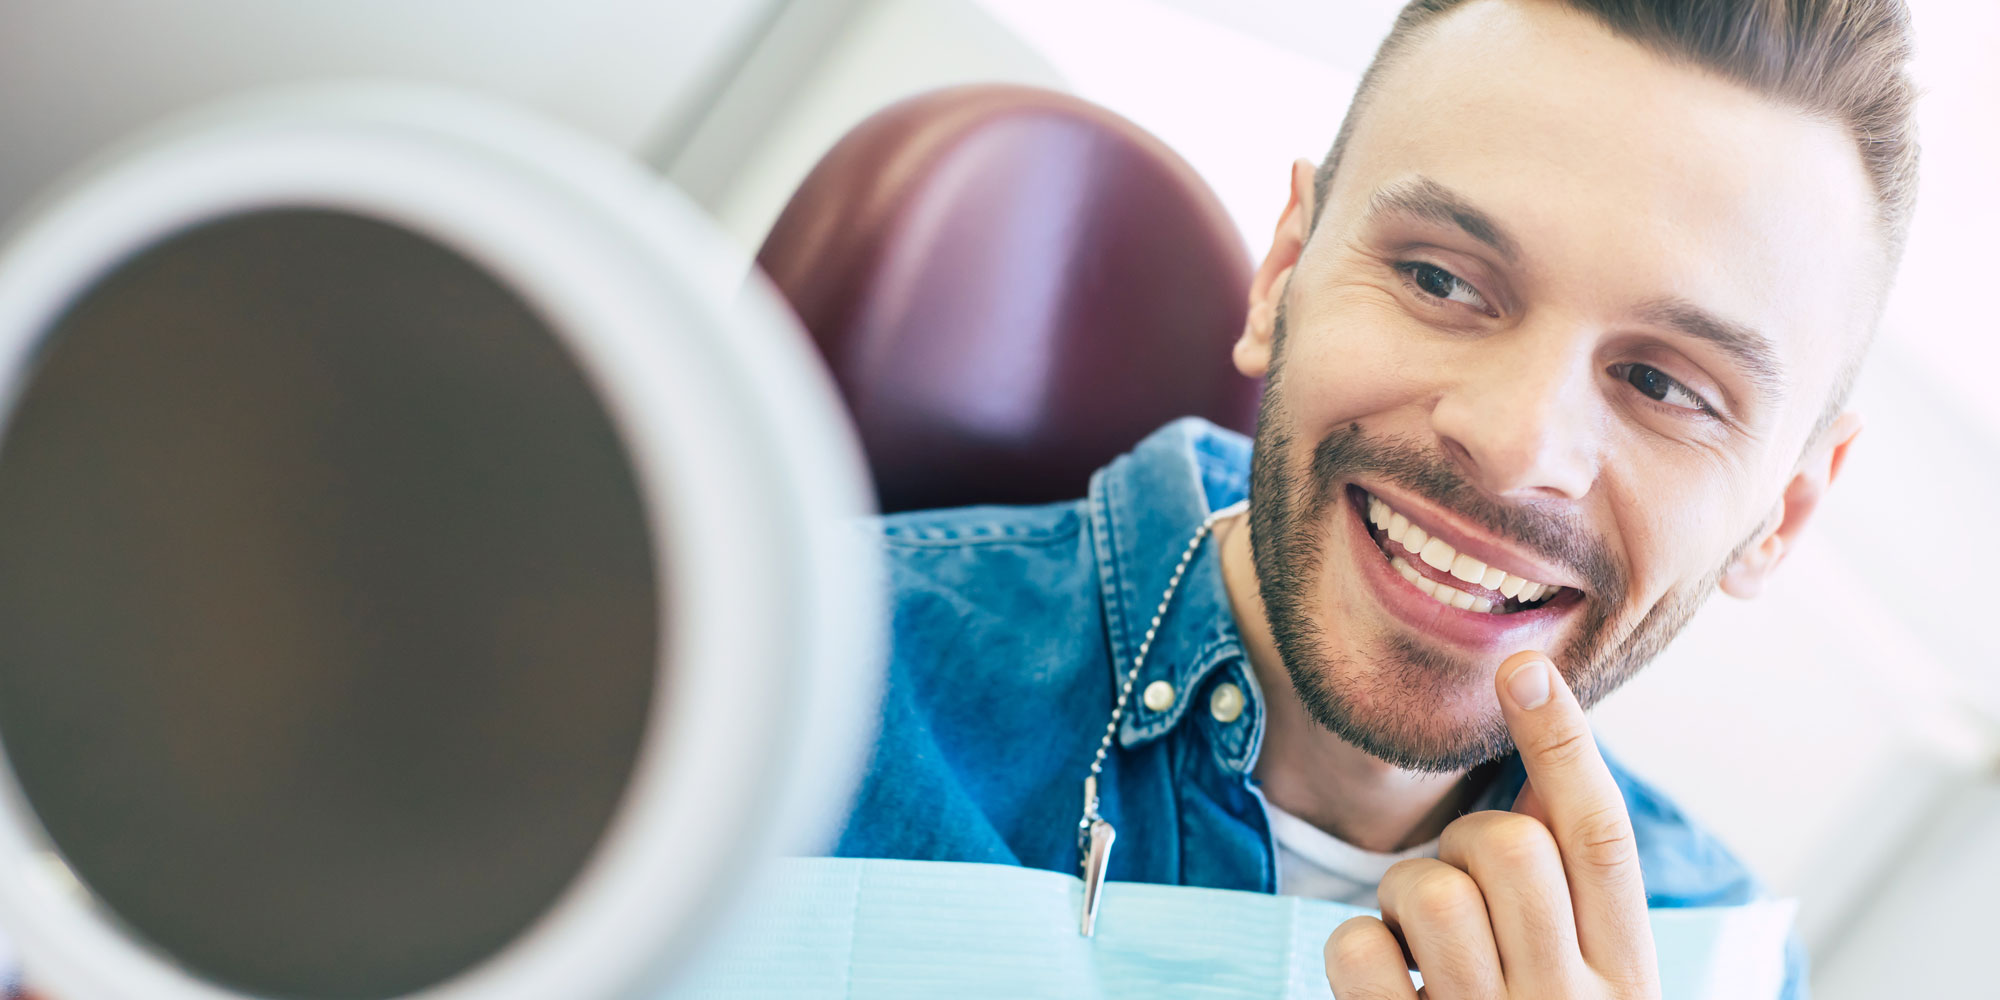 tooth extraction patient smiling